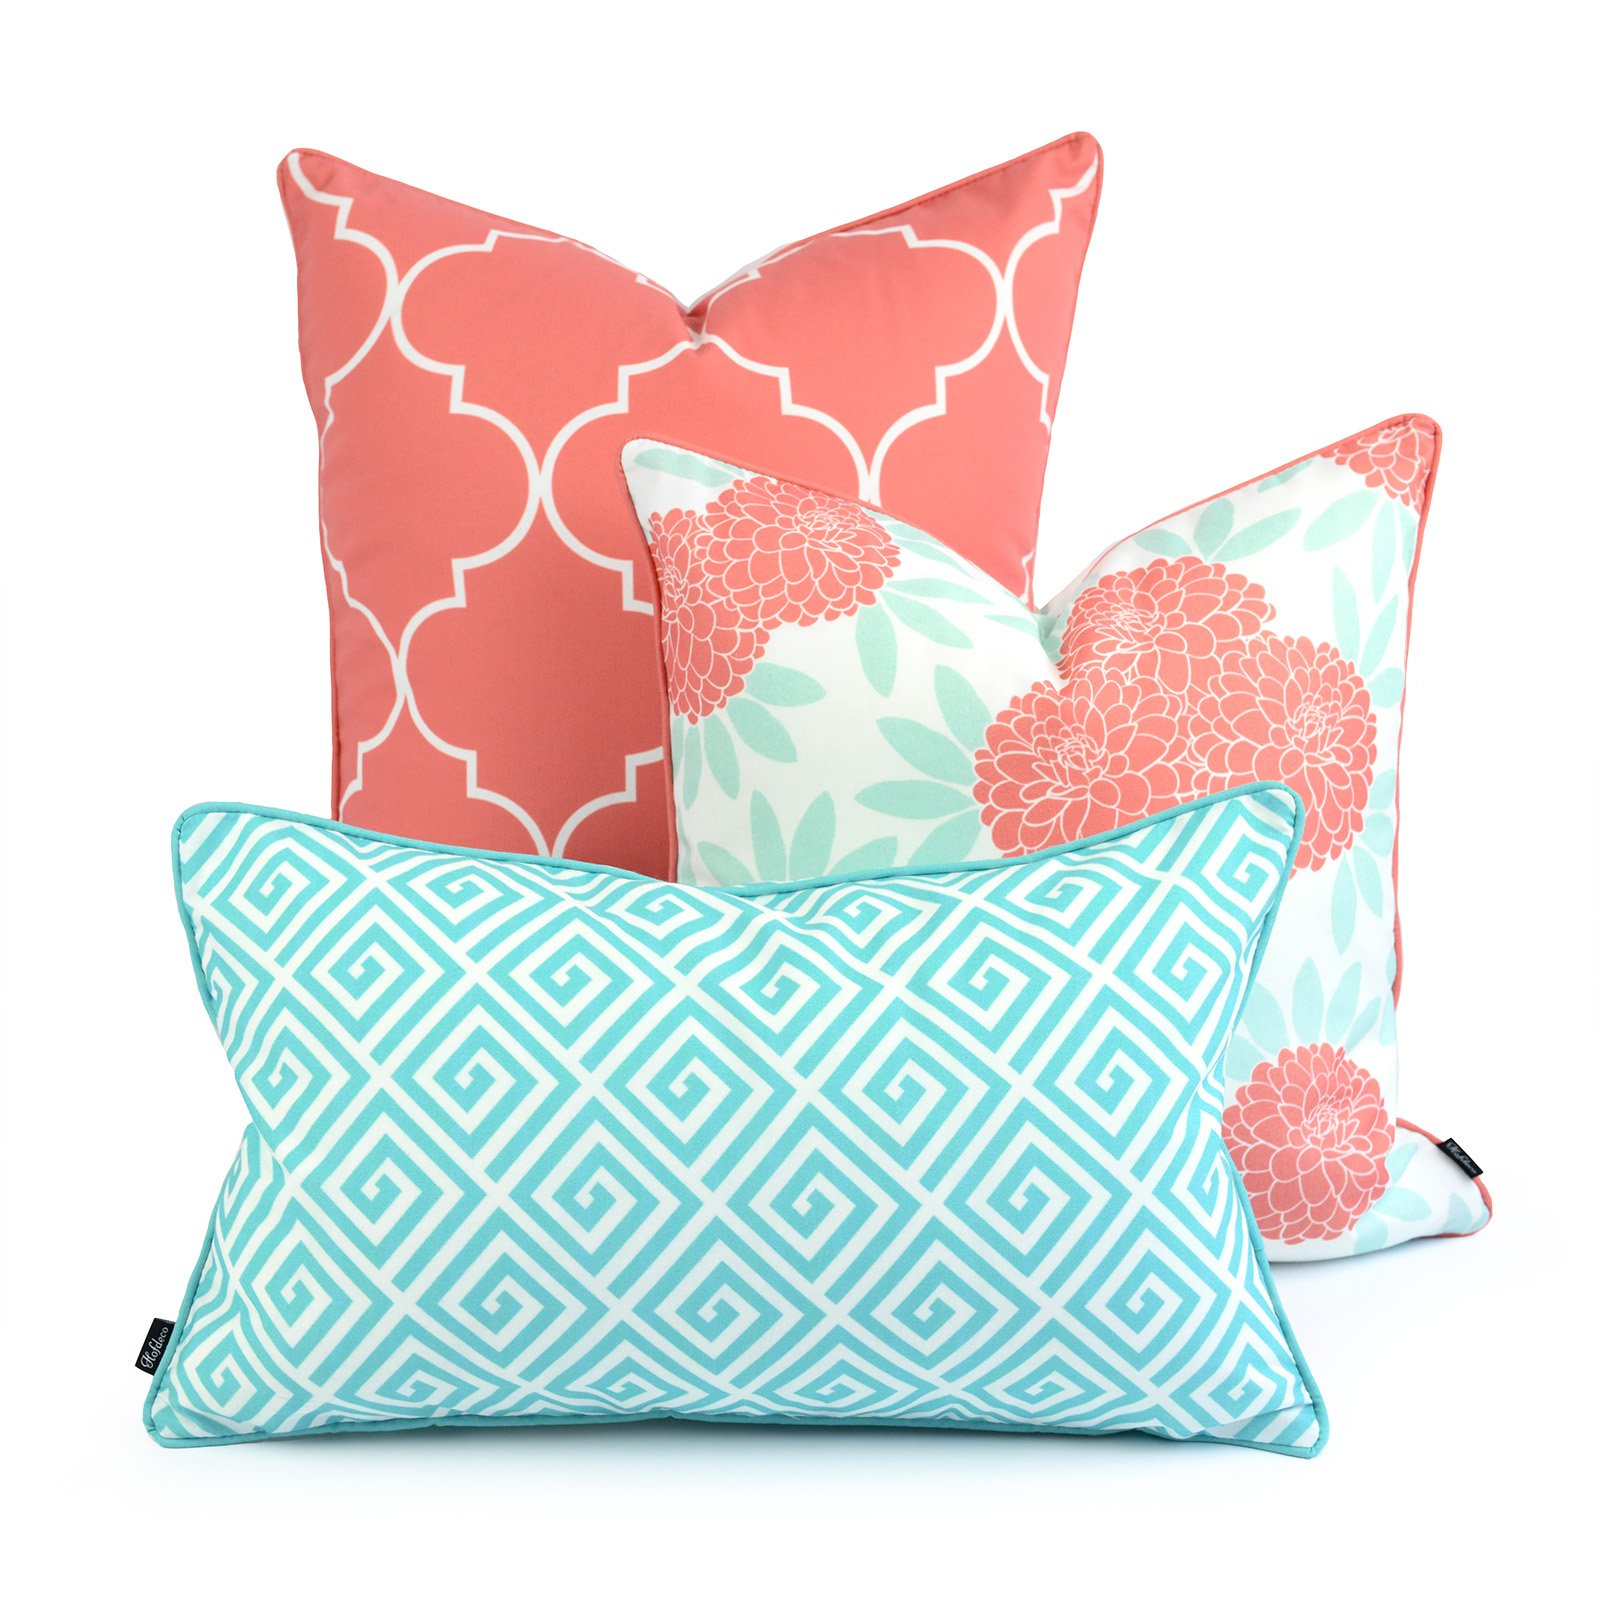 Hofdeco Decorative Throw and Lumbar Pillow Cover INDOOR OUTDOOR WATER RESISTANT Canvas Spring Aqua Coral Pink Quatrefoil Maze Chinoiserie Floral 18''x18'' 20''x20'' 12''x20'' Set of 3